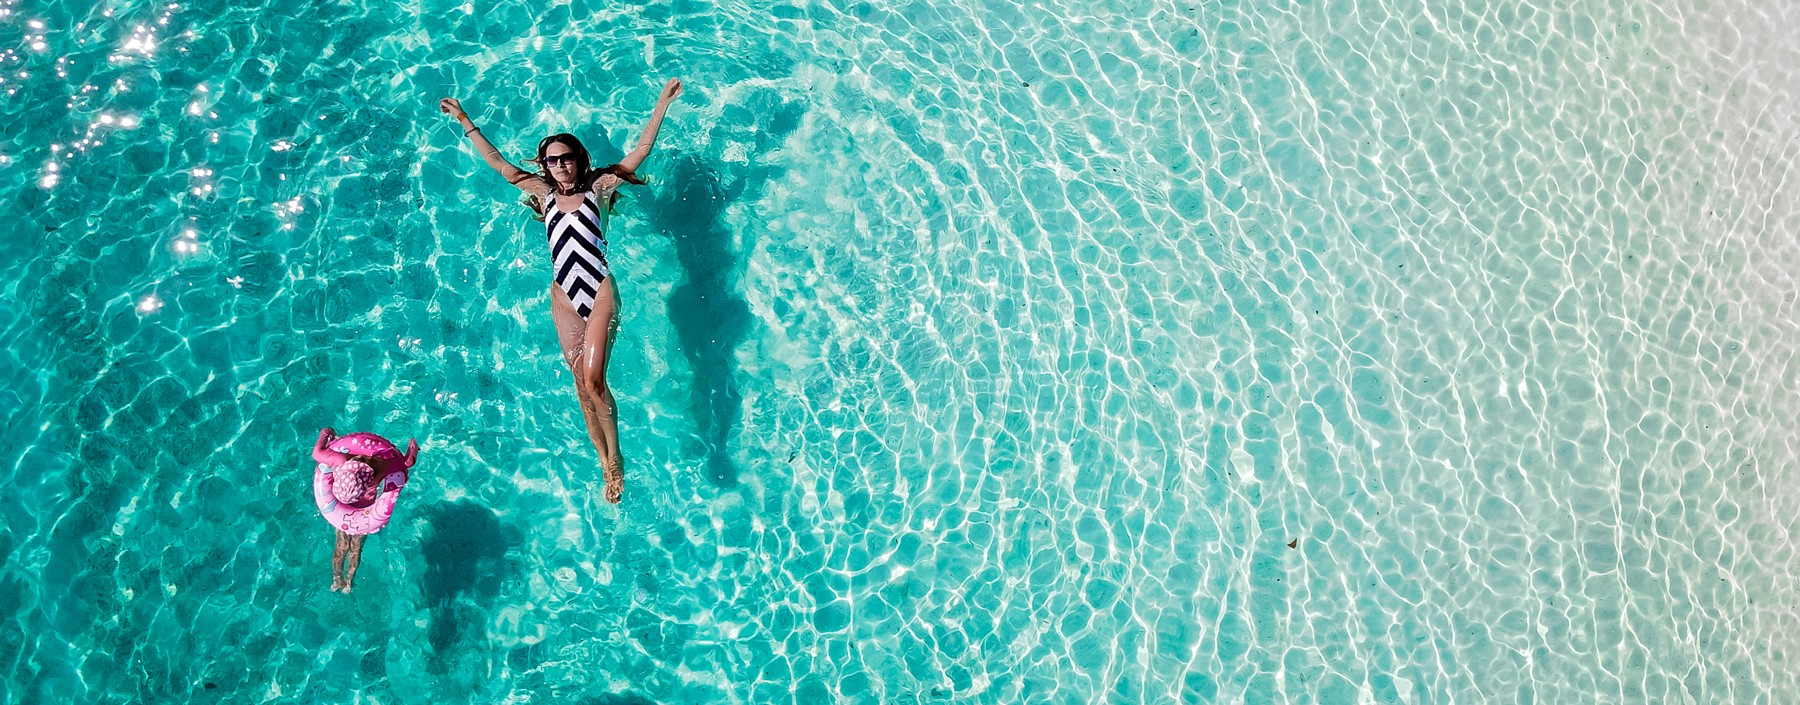 save-25-off-with-phuket-sales